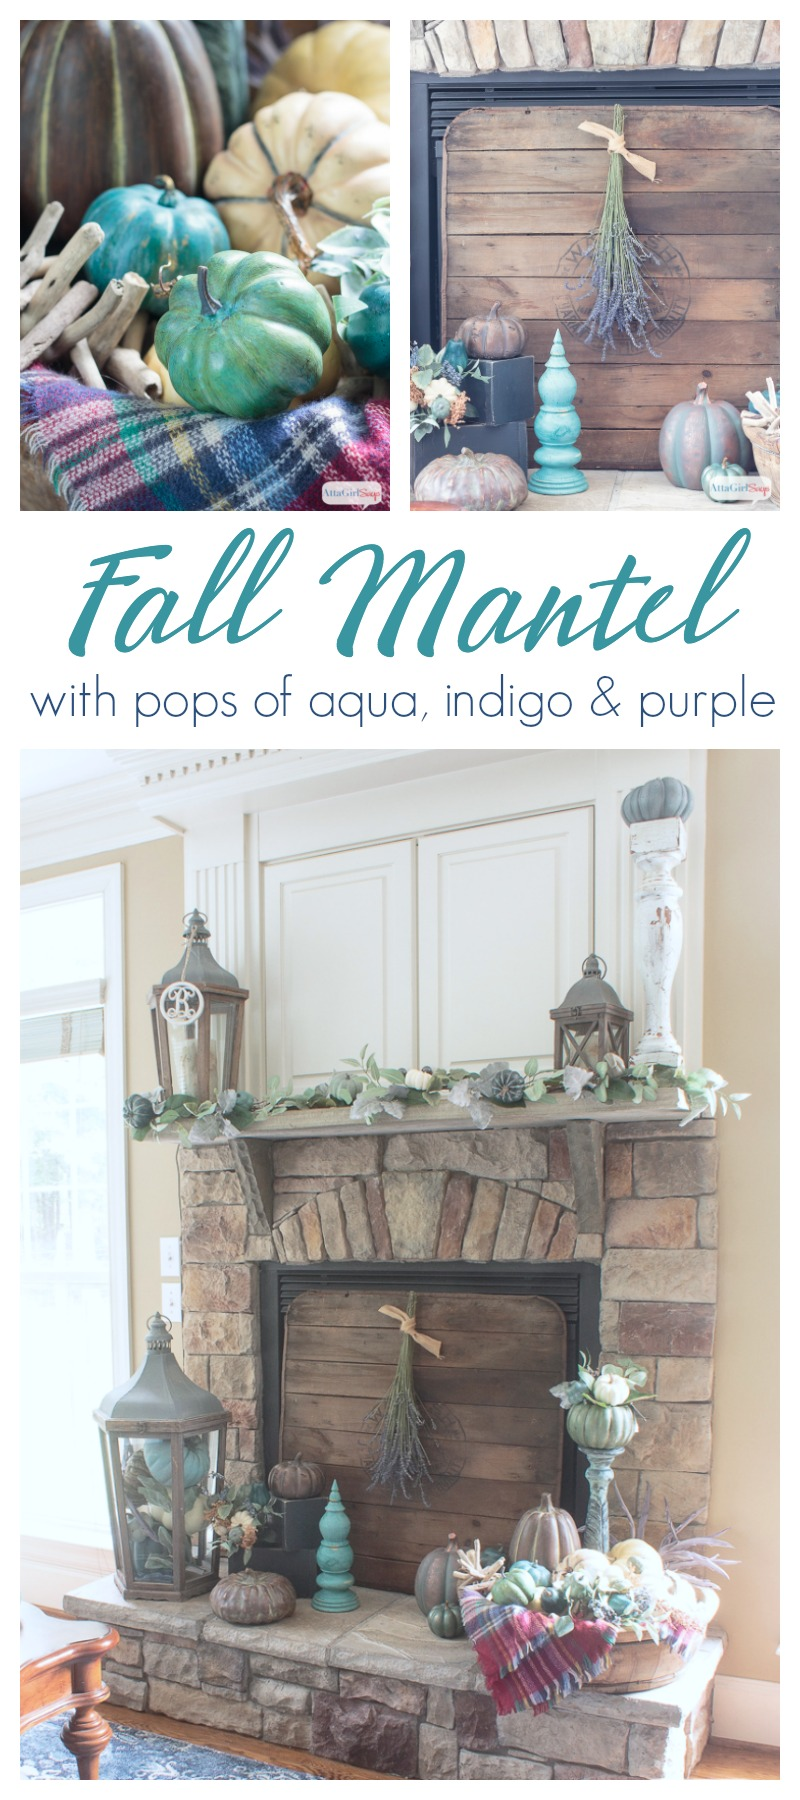 A cozy plaid blanket scarf inspired my fall fireplace mantel decor. Rather than traditional orange and yellow, I decorated with pops of aqua, indigo and purple. Be sure to click to see more gorgeous fall mantels.